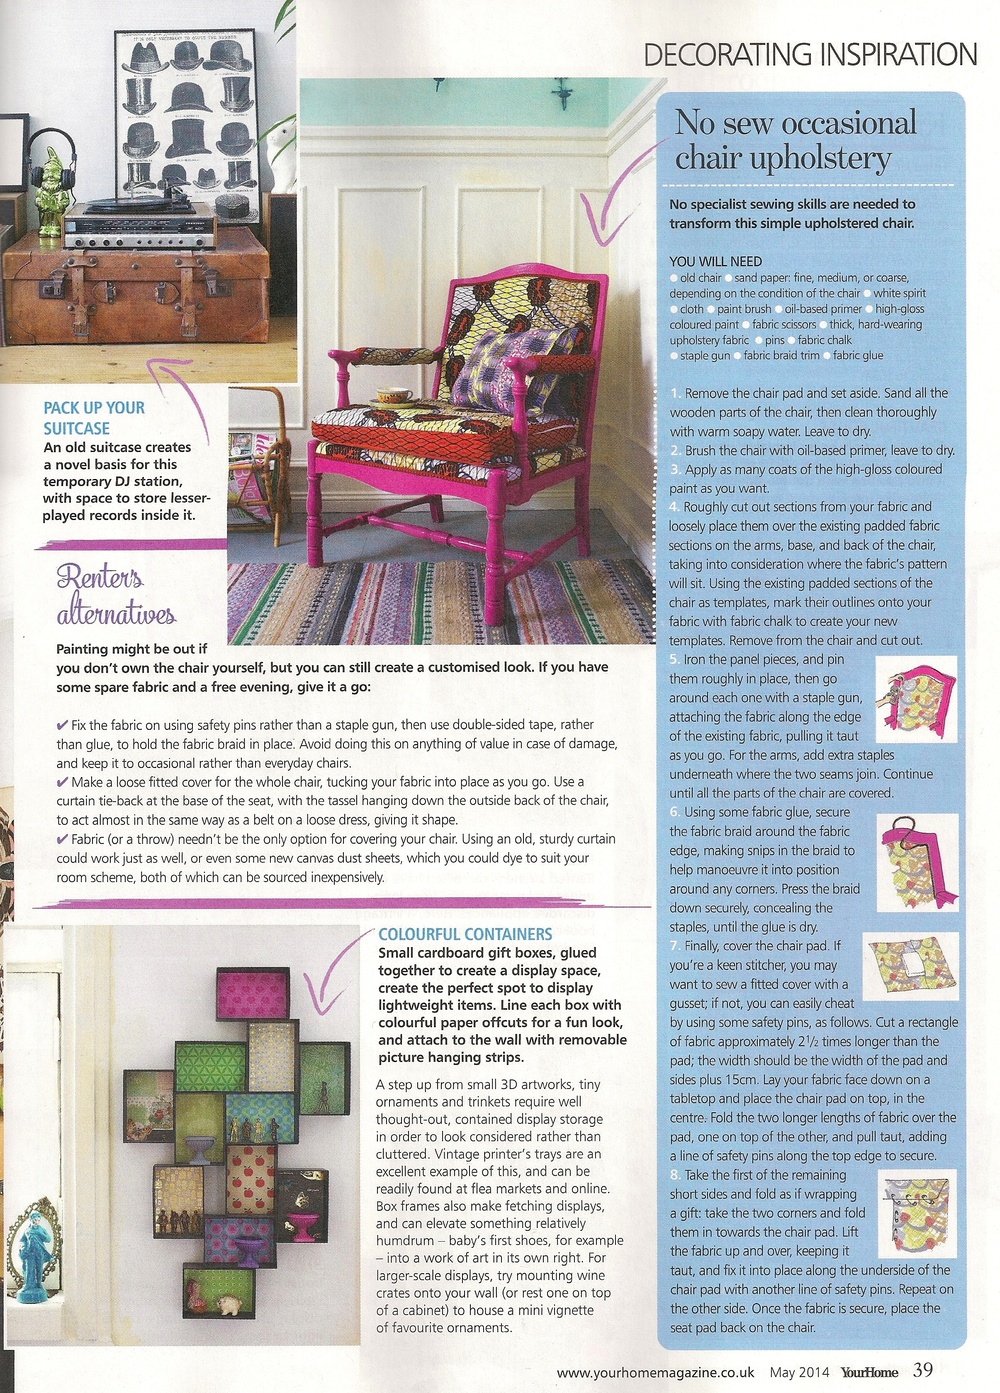 Home for Now by Joanna Thornhill Extract Your Home magazine May 2014 p2.jpg